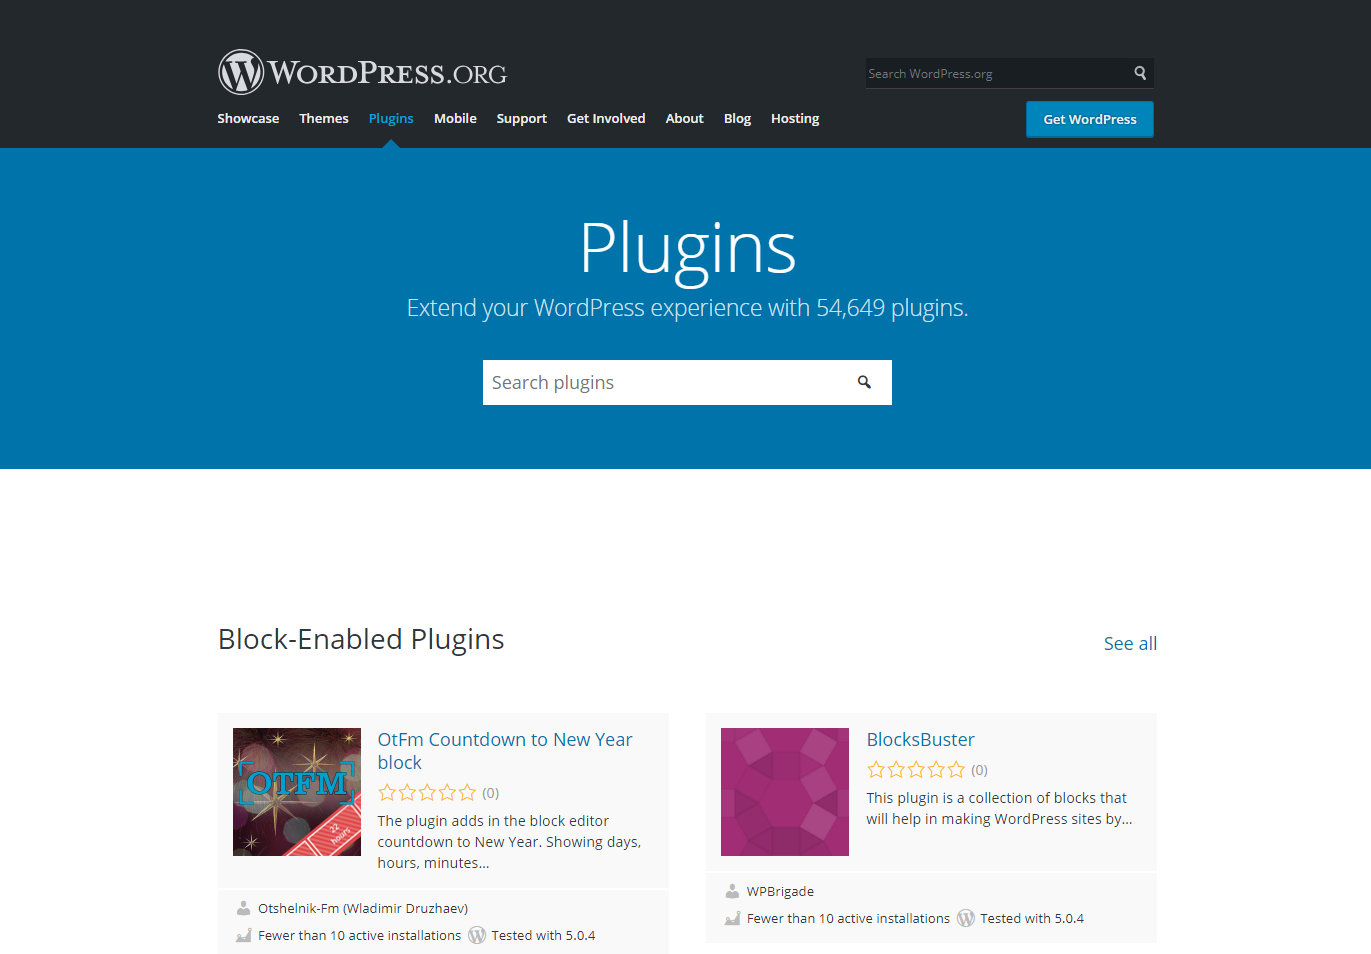 WordPress has plugins for every feature